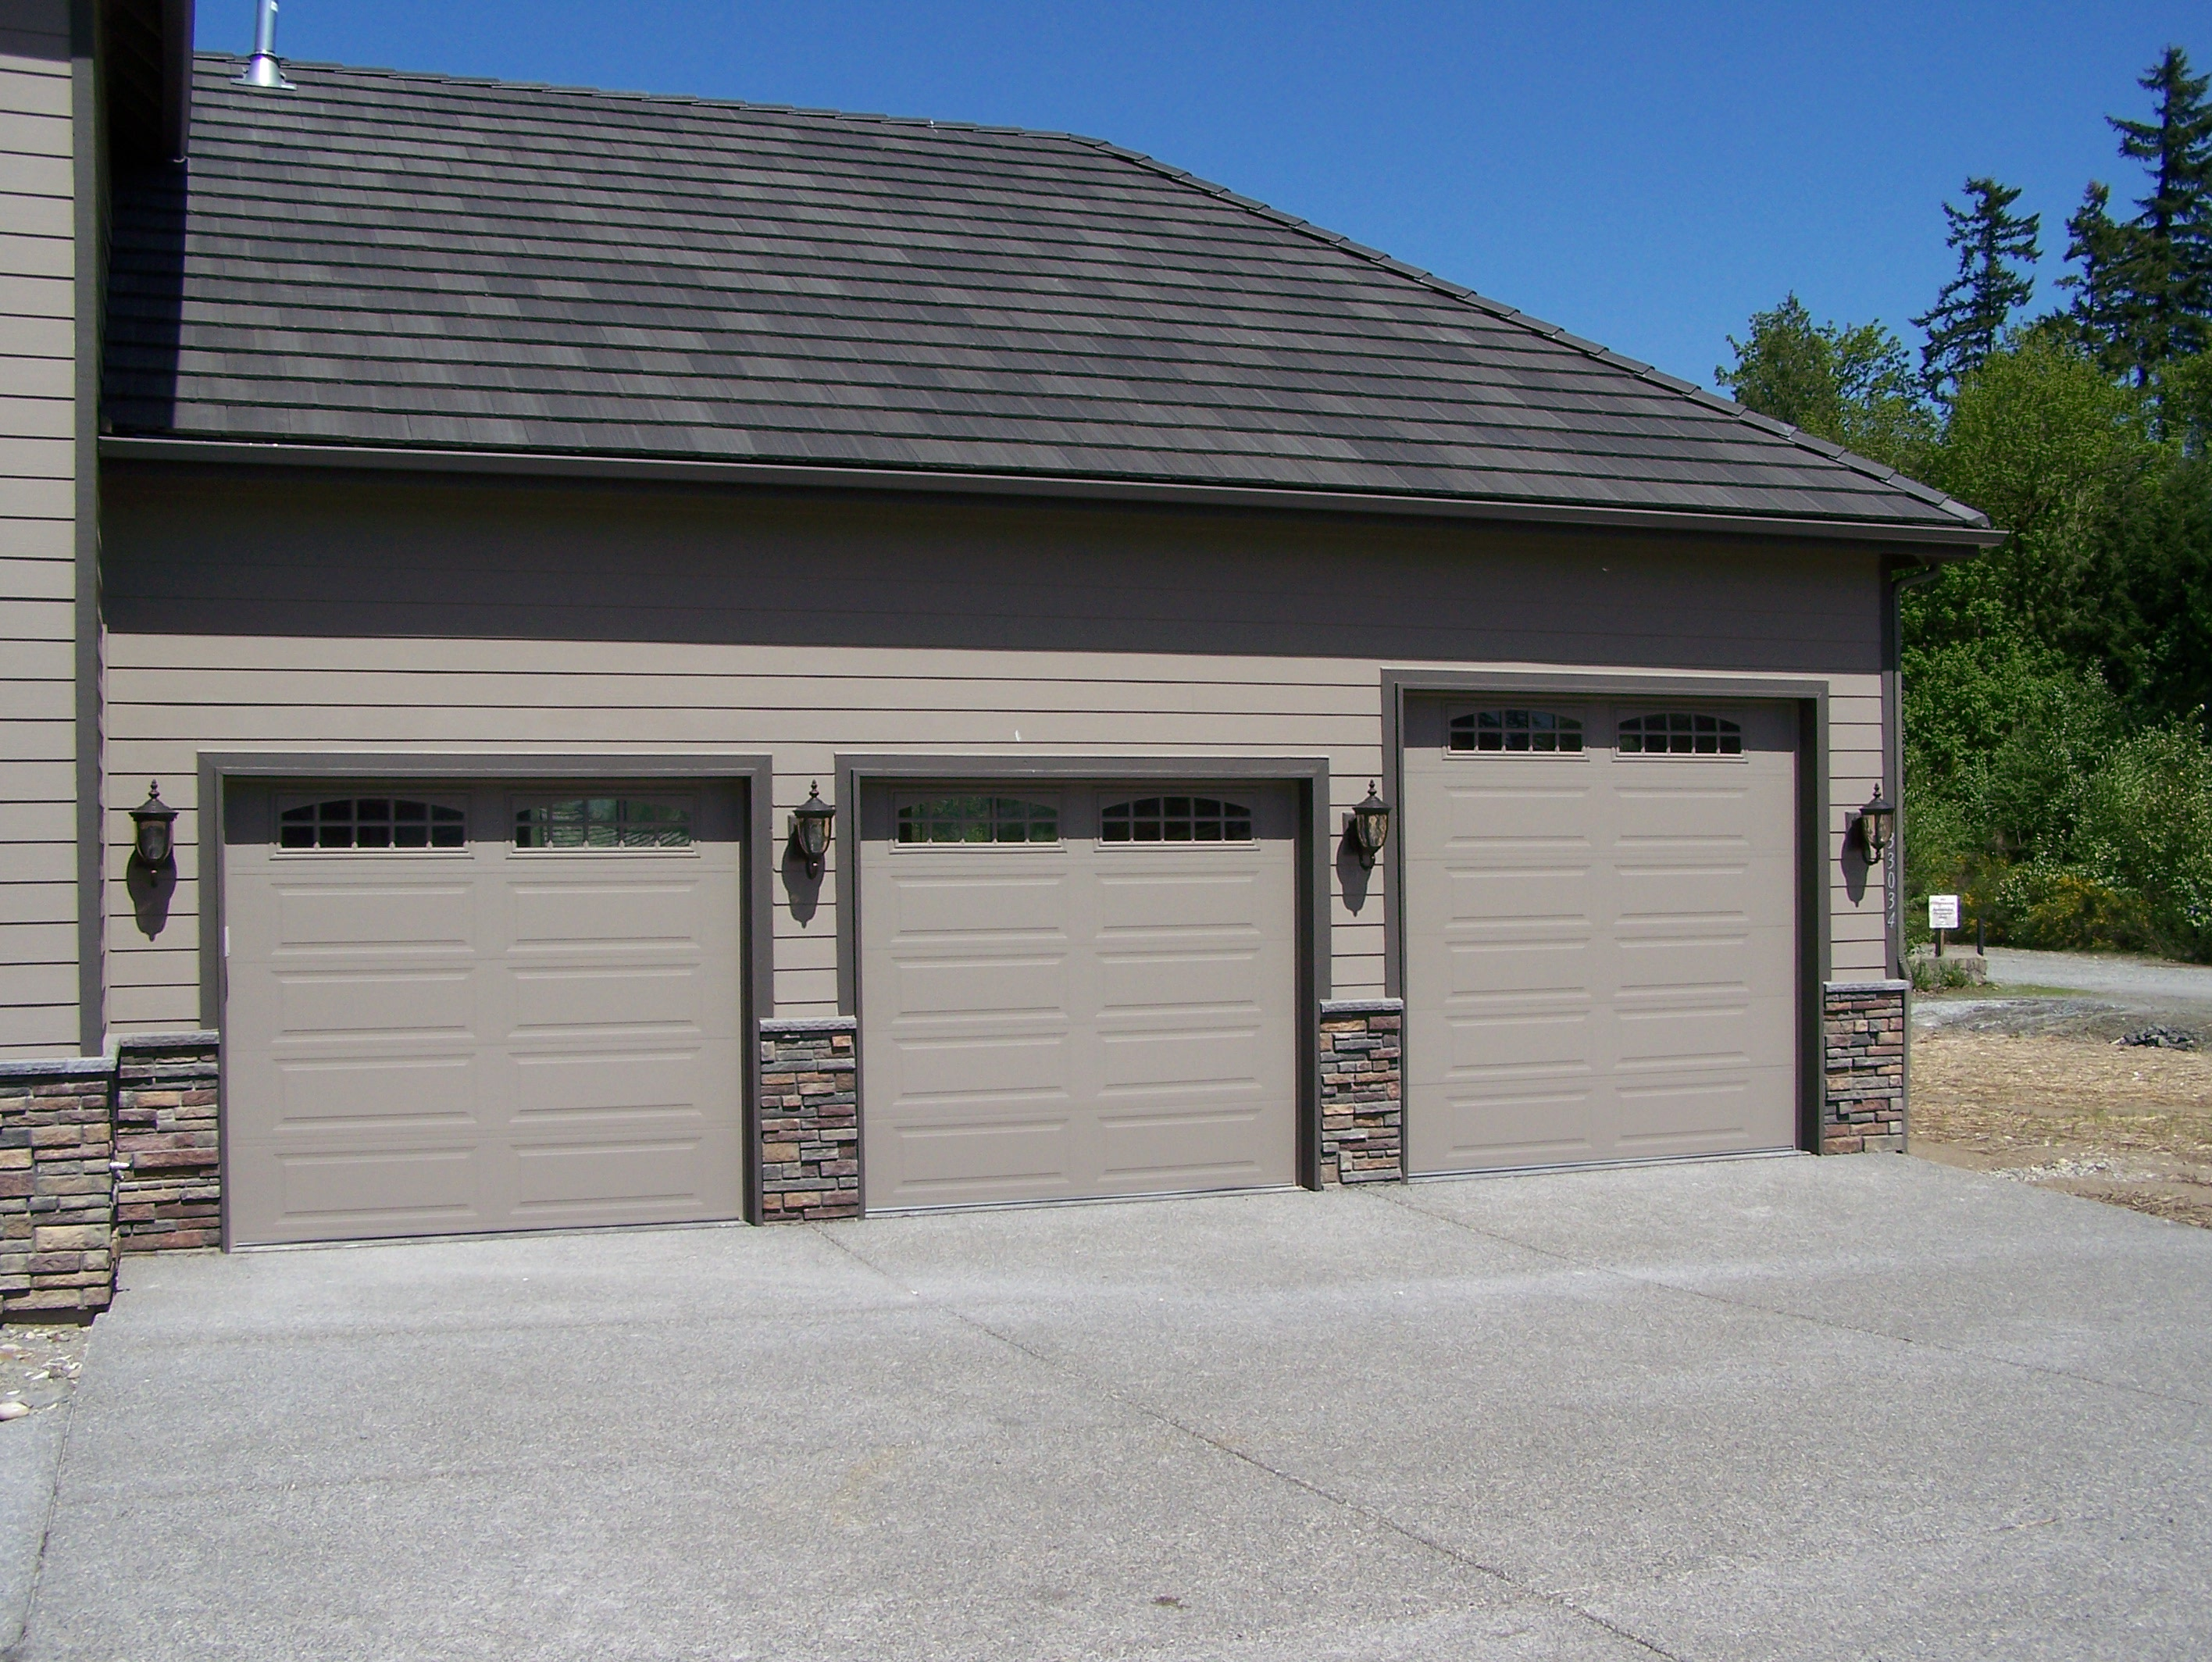 500 ranch panel cascade northwest door canada ltd for Ranch house garage doors